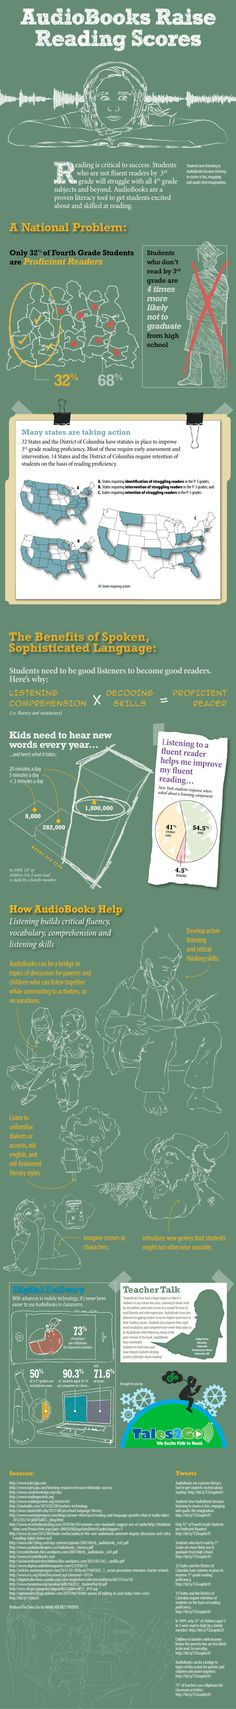 AudioBooks Raise Reading Scores Infographic | Tales2Go